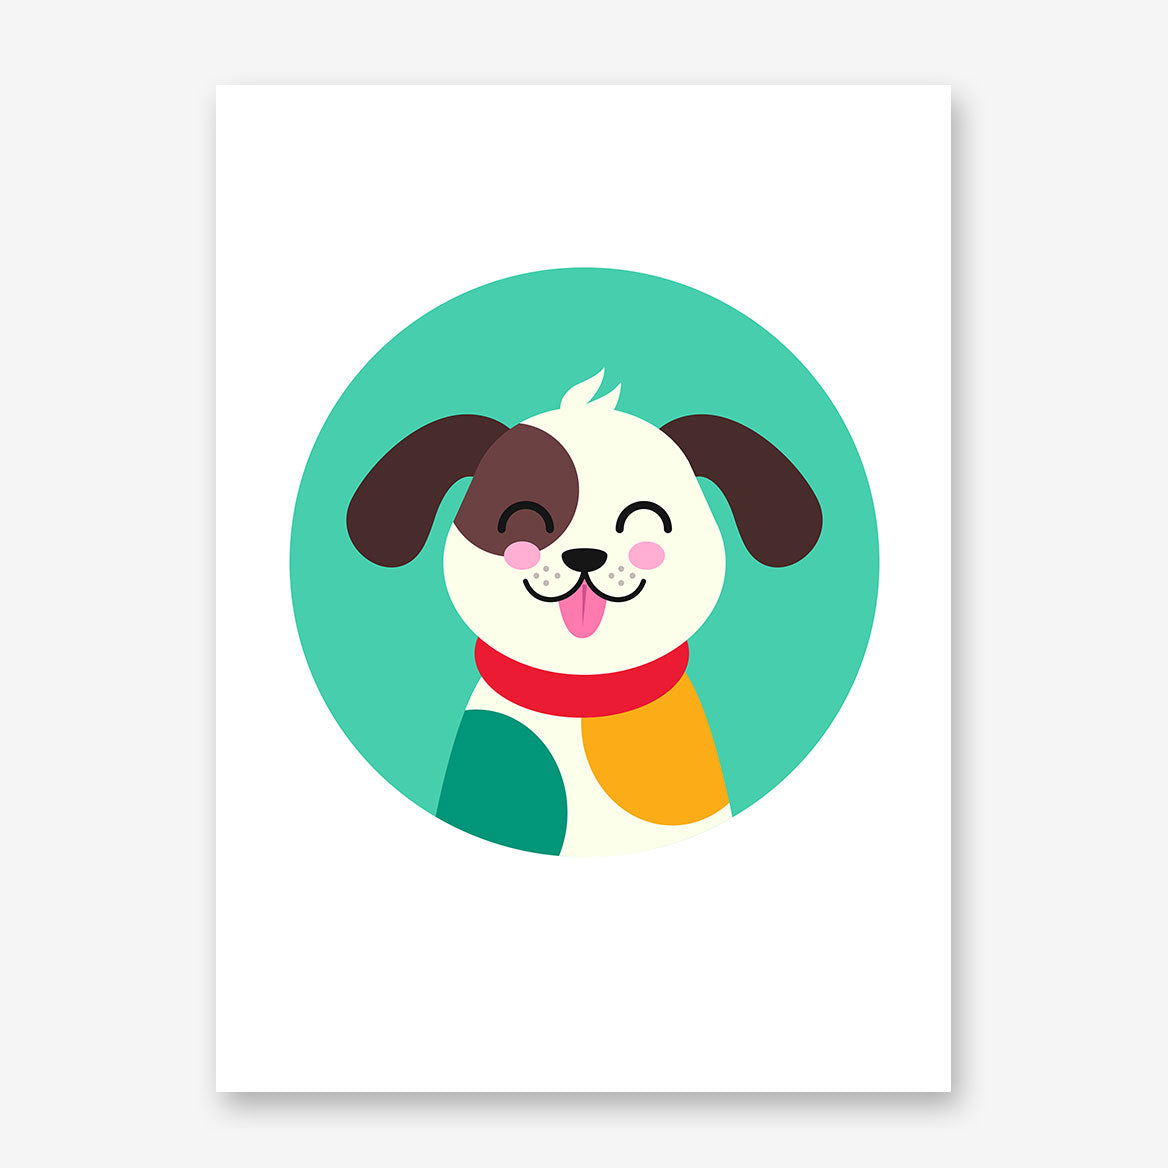 Nursery poster print with a smiley dog in a blue circle.